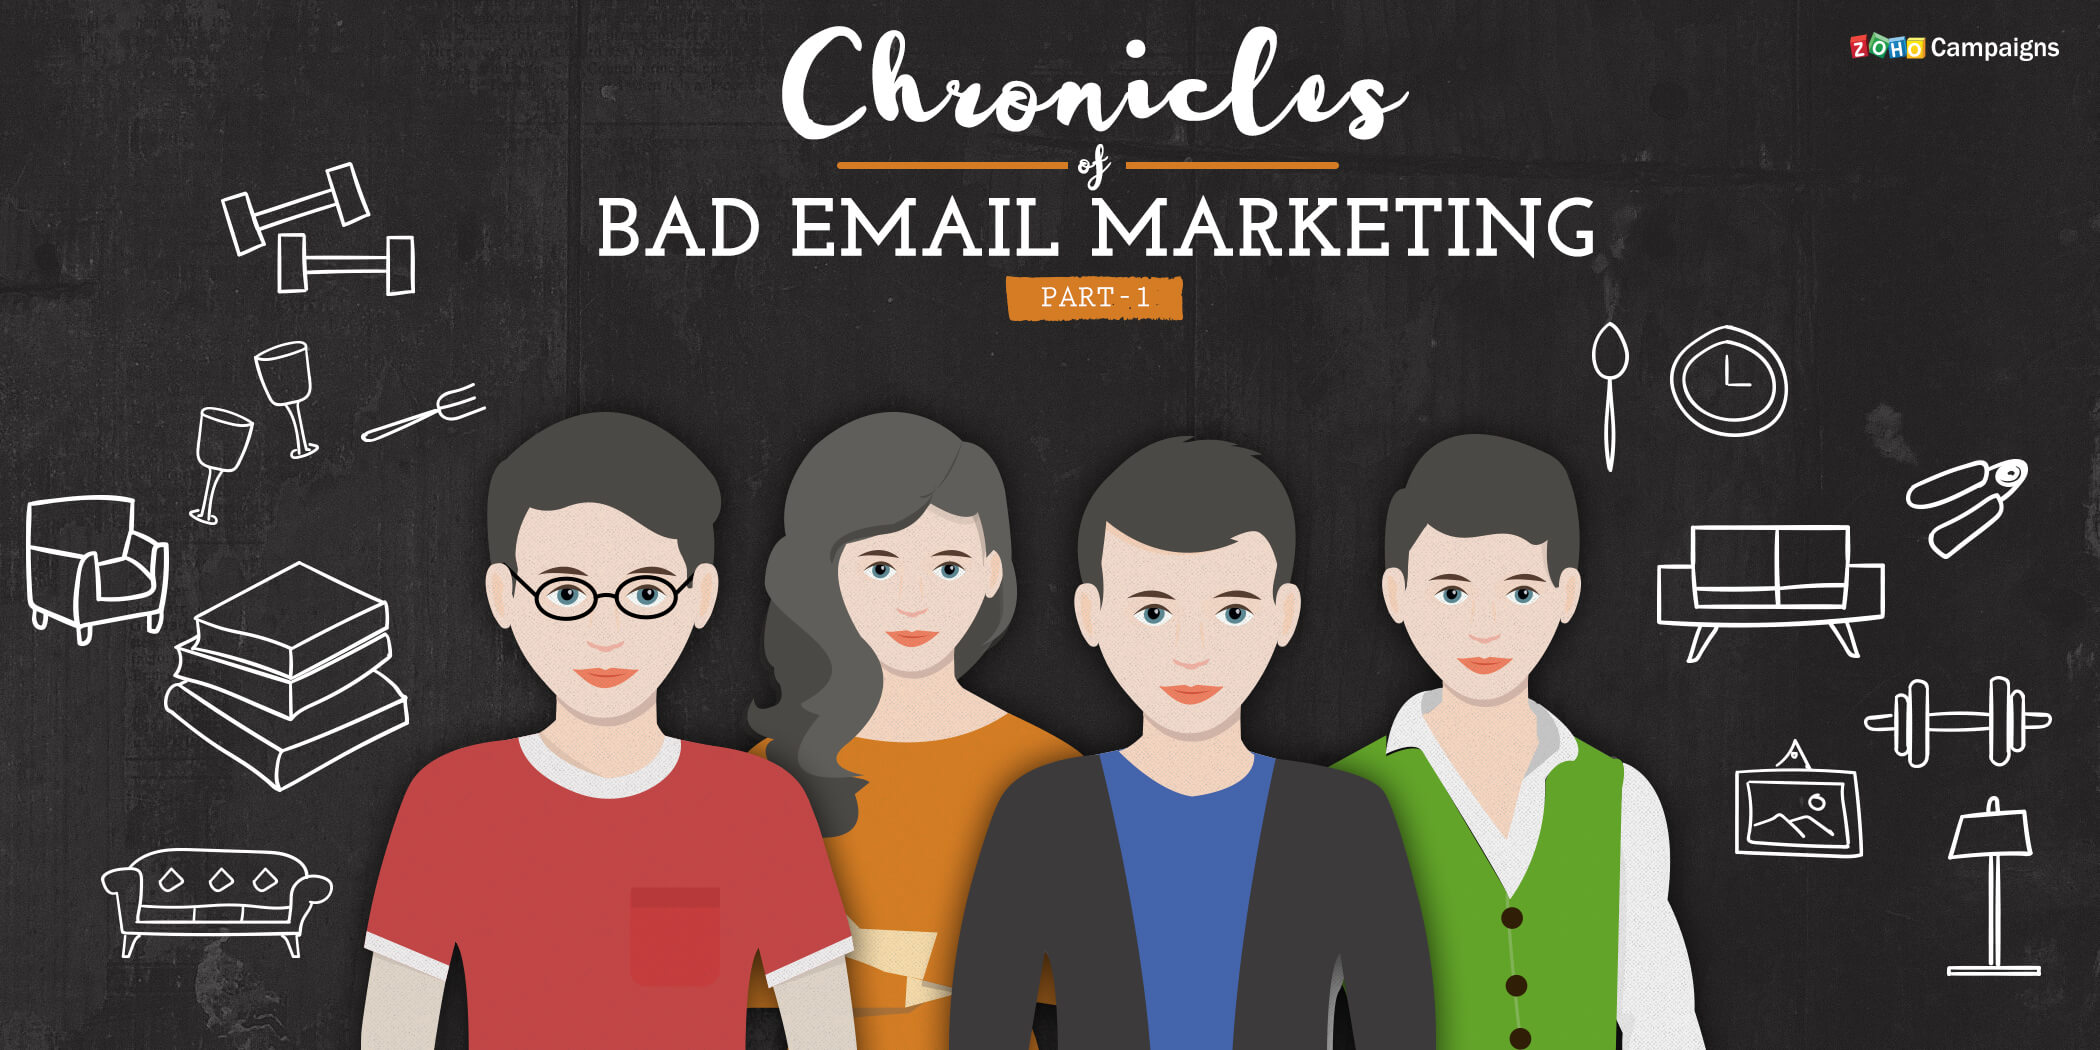 Chronicles of Bad Email Marketing (Part 1)